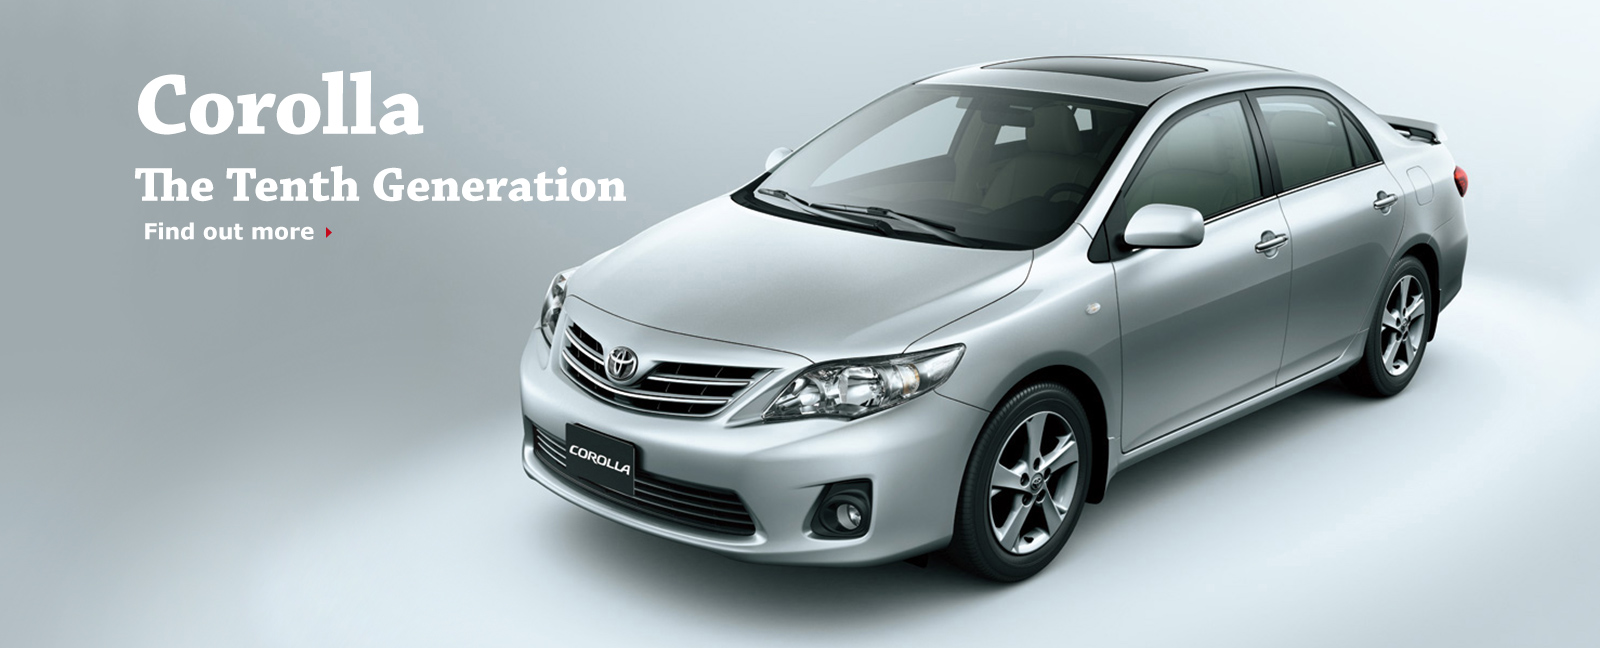 Corolla The Tenth Generation Find out more